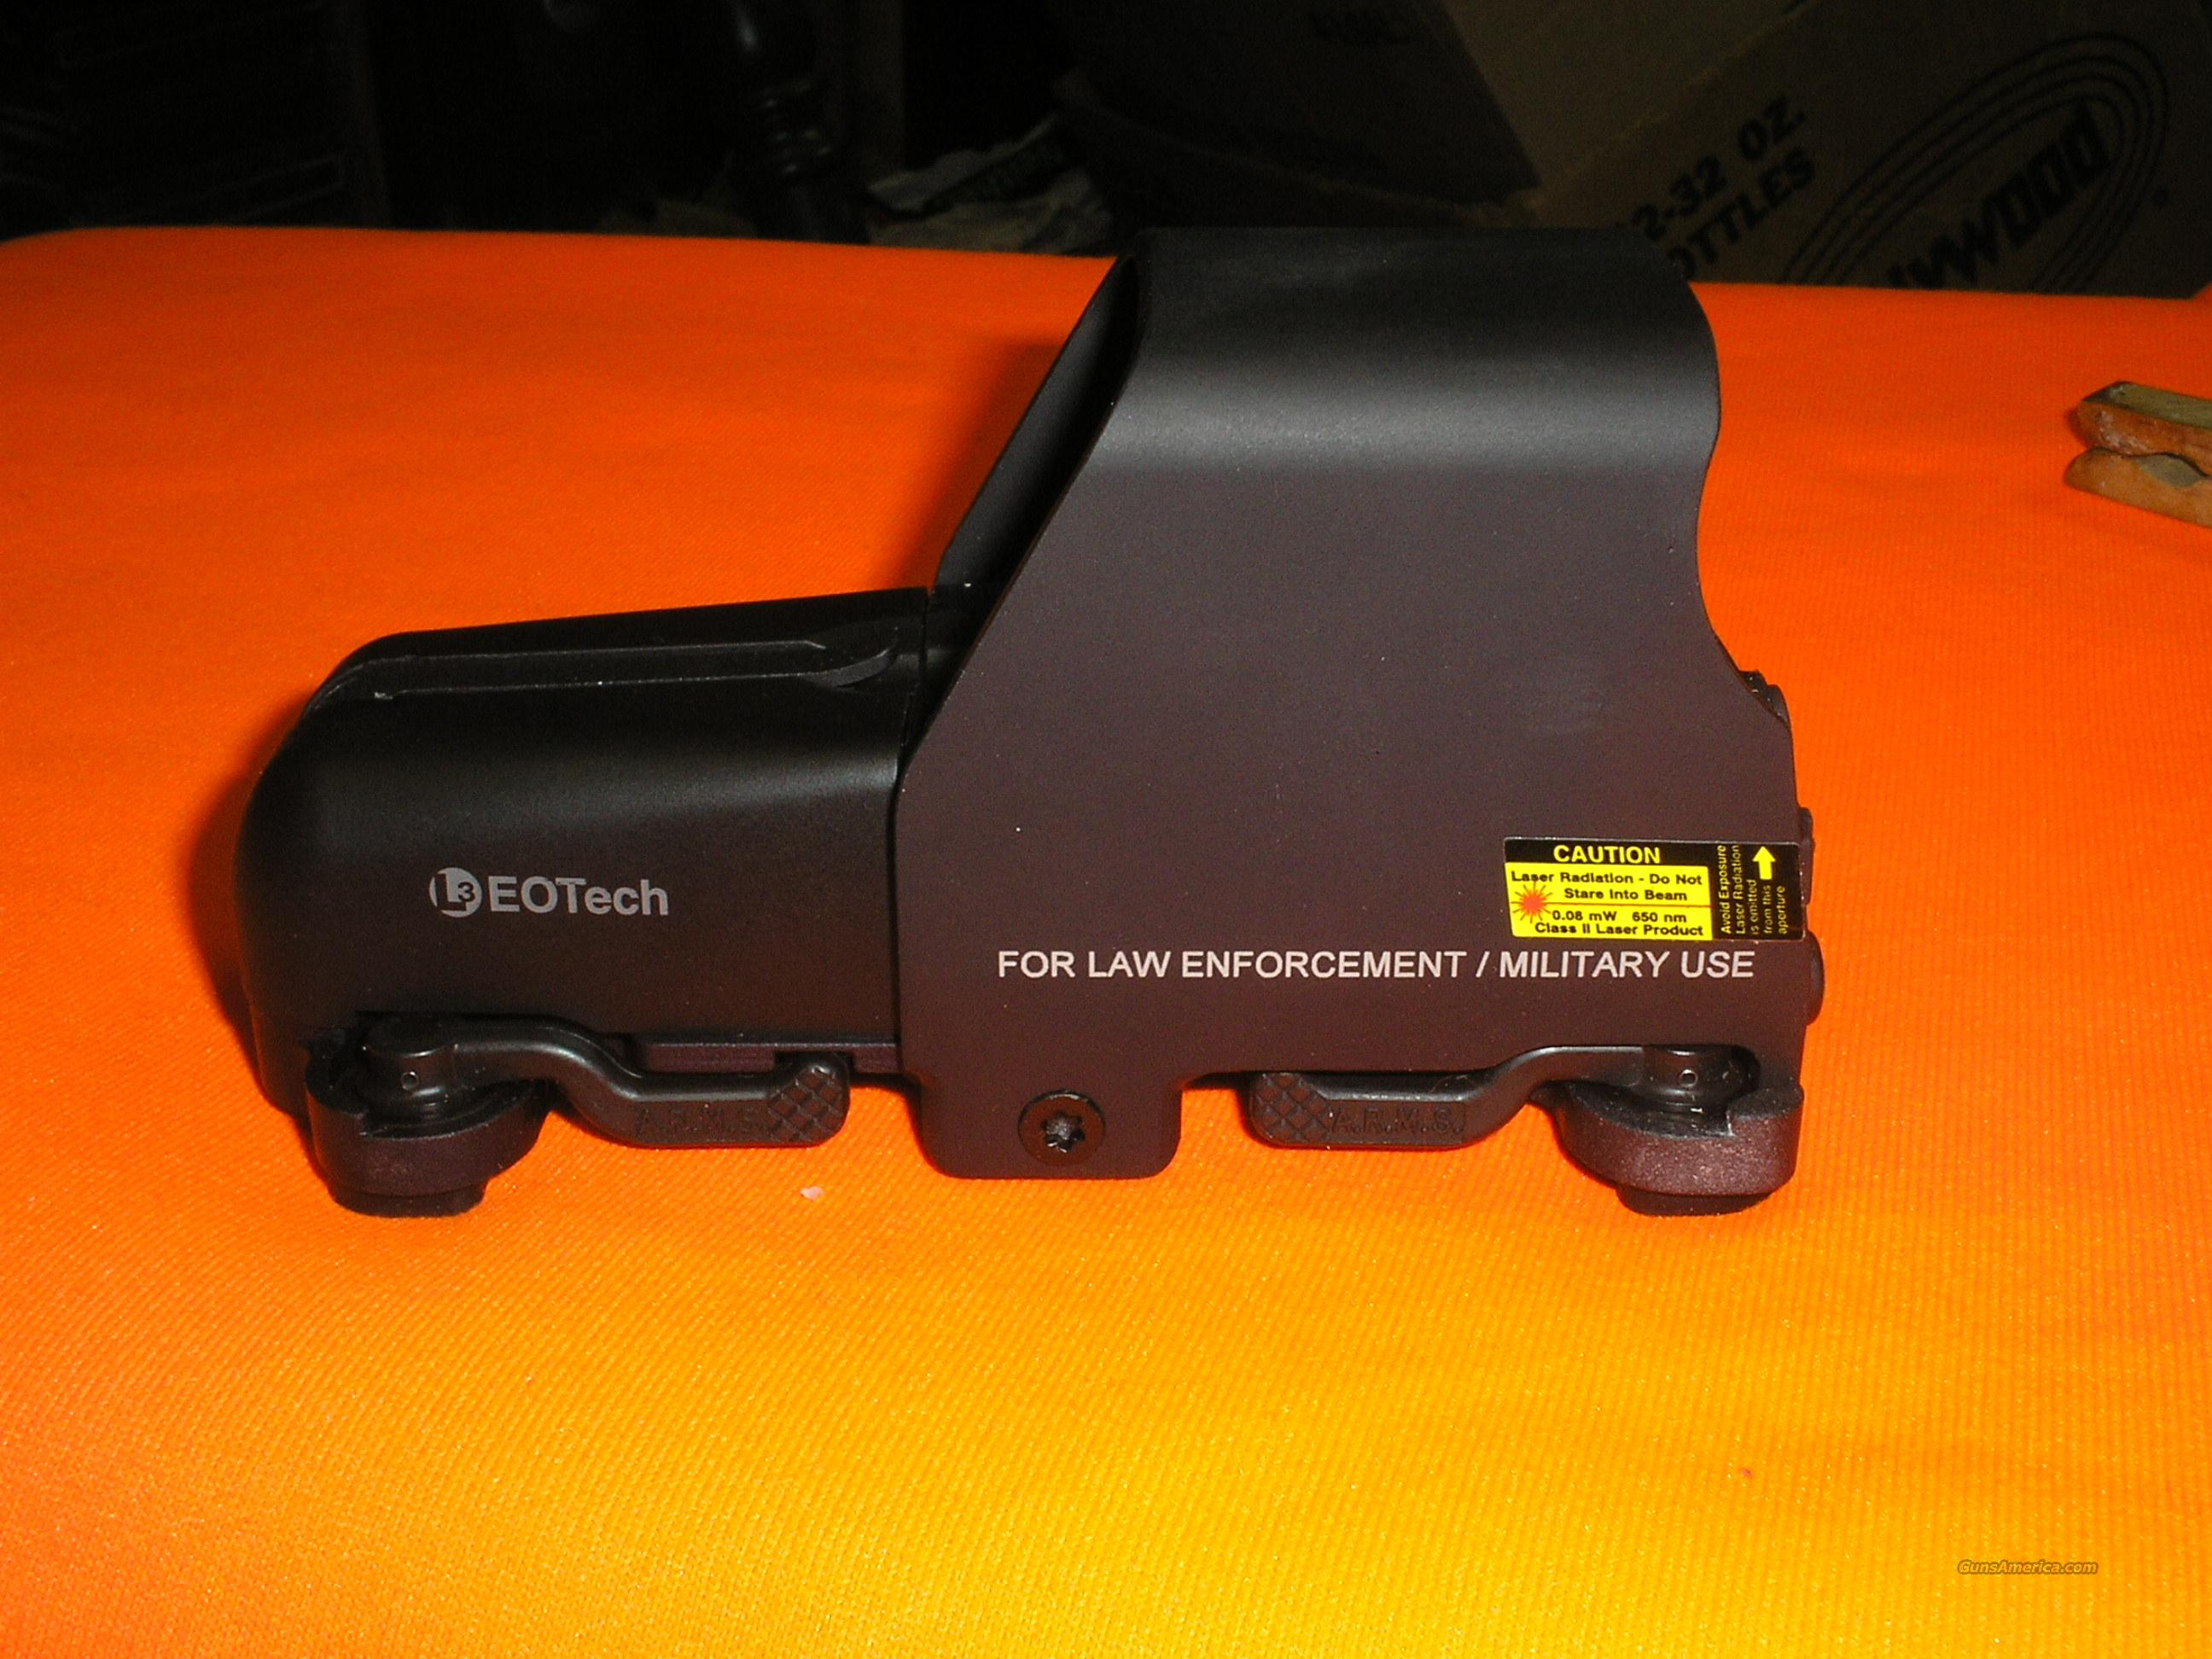 EoTech 553 Holosight  Non-Guns > Scopes/Mounts/Rings & Optics > Tactical Scopes > Other Head-Up Optics